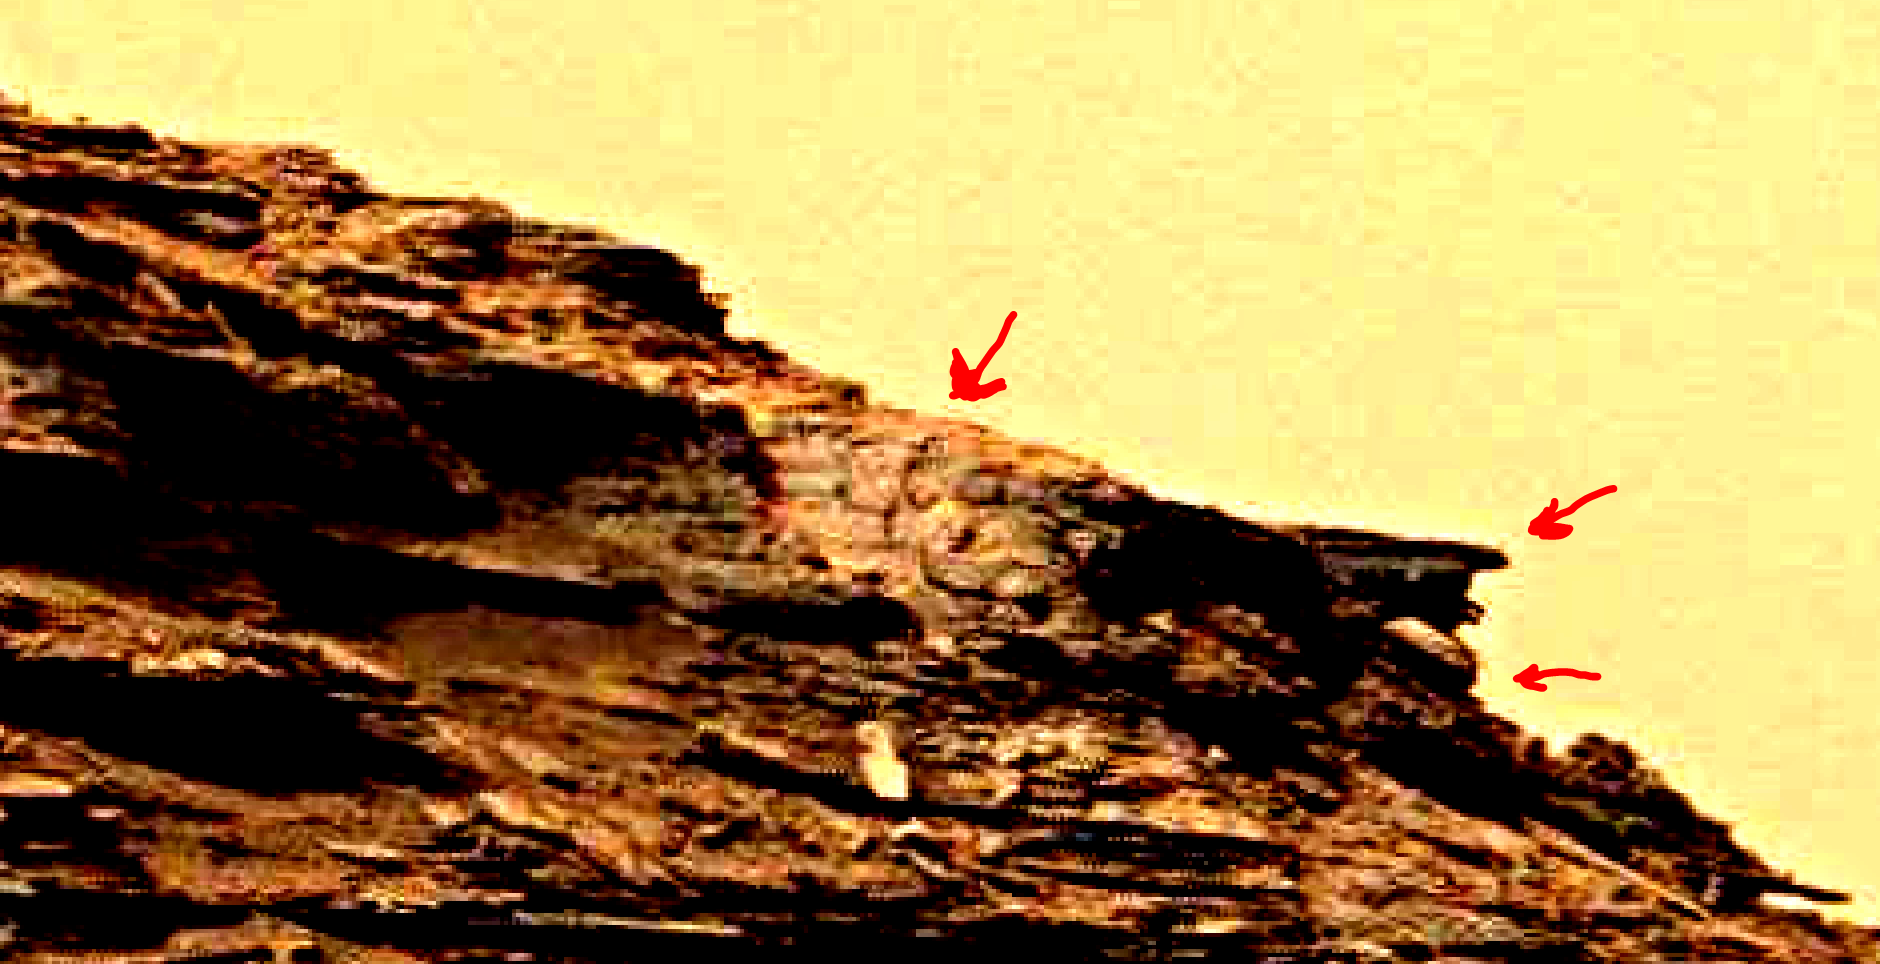 mars-sol-1463-anomaly-artifacts-22a-was-life-on-mars